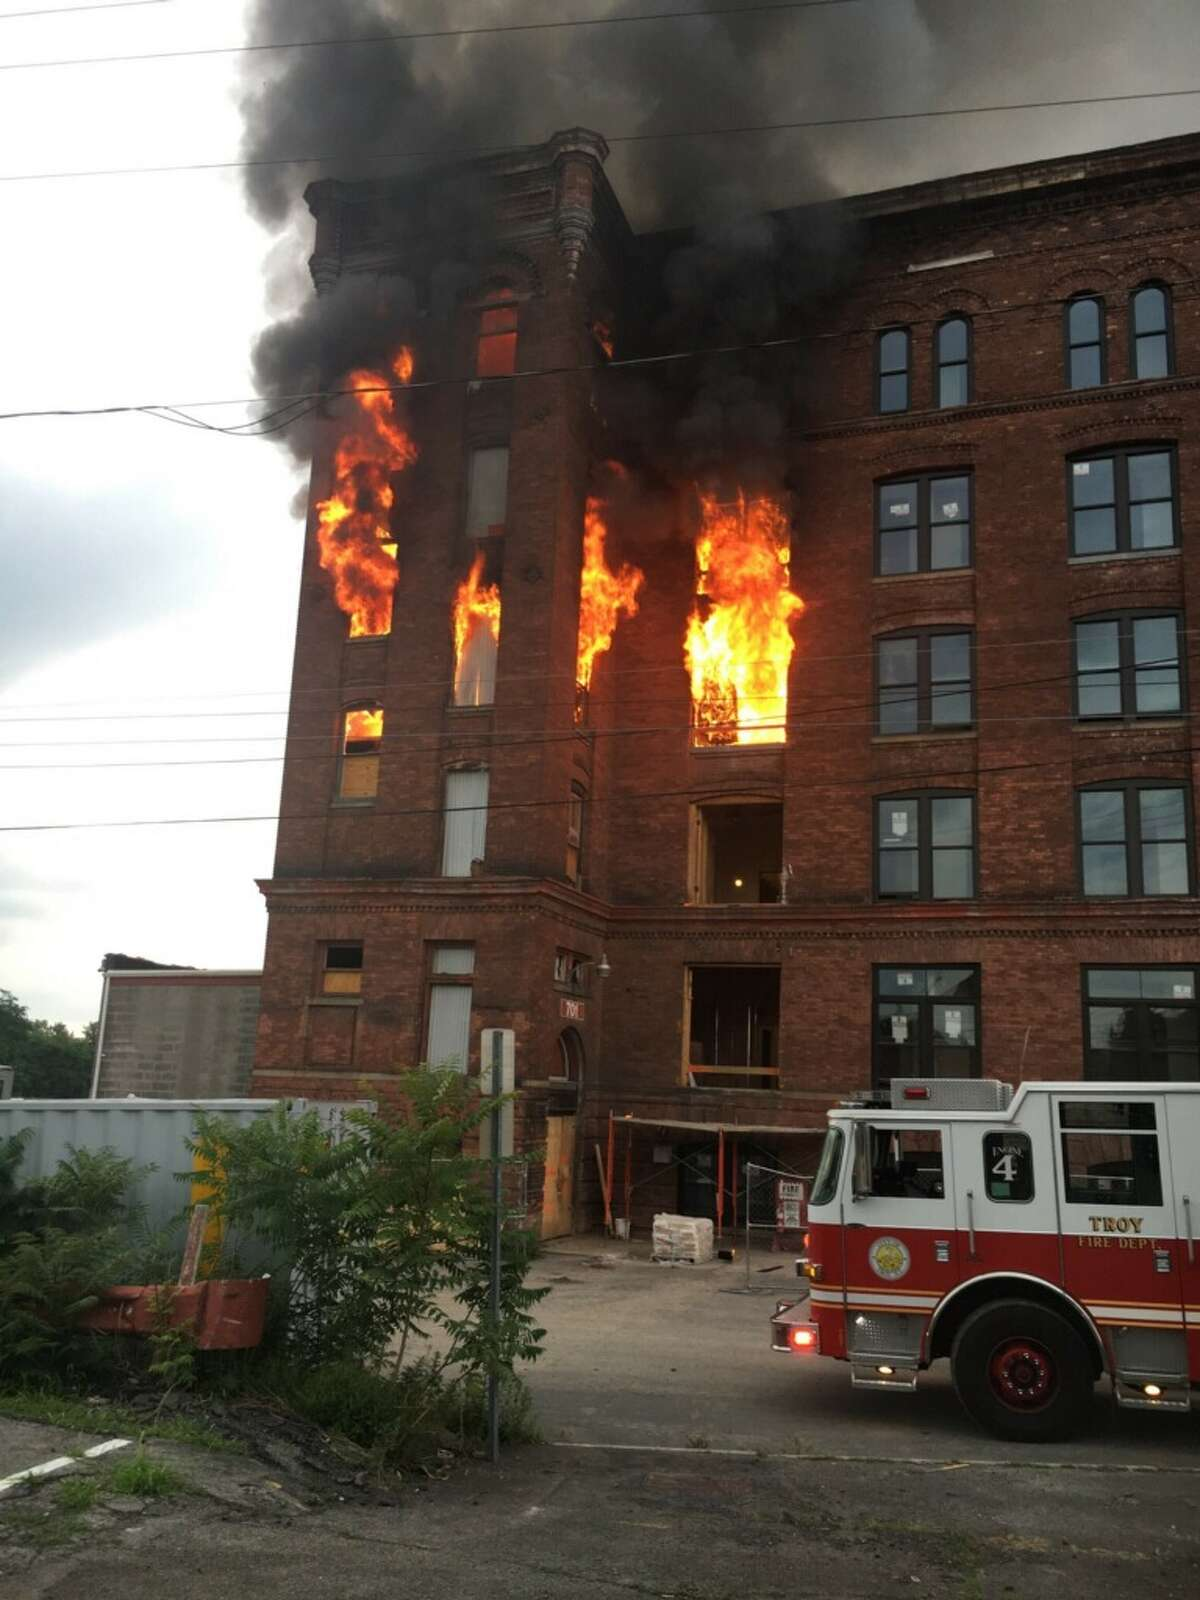 Fire crews battle a blaze at 701 River St. in Troy, N.Y., on July 19, 2019.